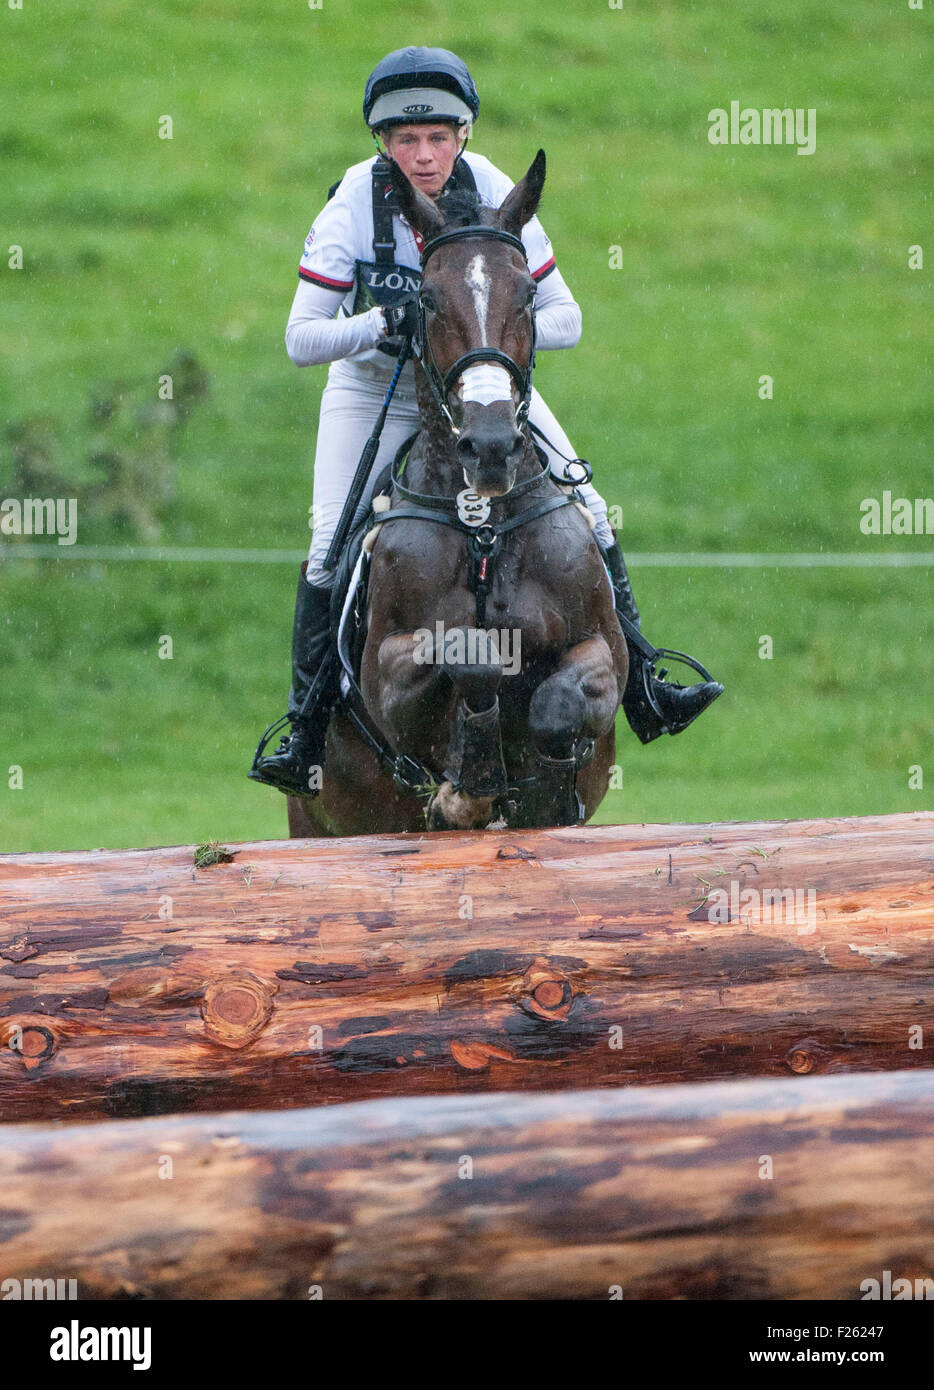 Blair Atholl, Perthshire, UK. 12th Sep, 2015. Izzy Taylor [GBR] riding KBIS Briarlands Matilda in action during Stock Photo